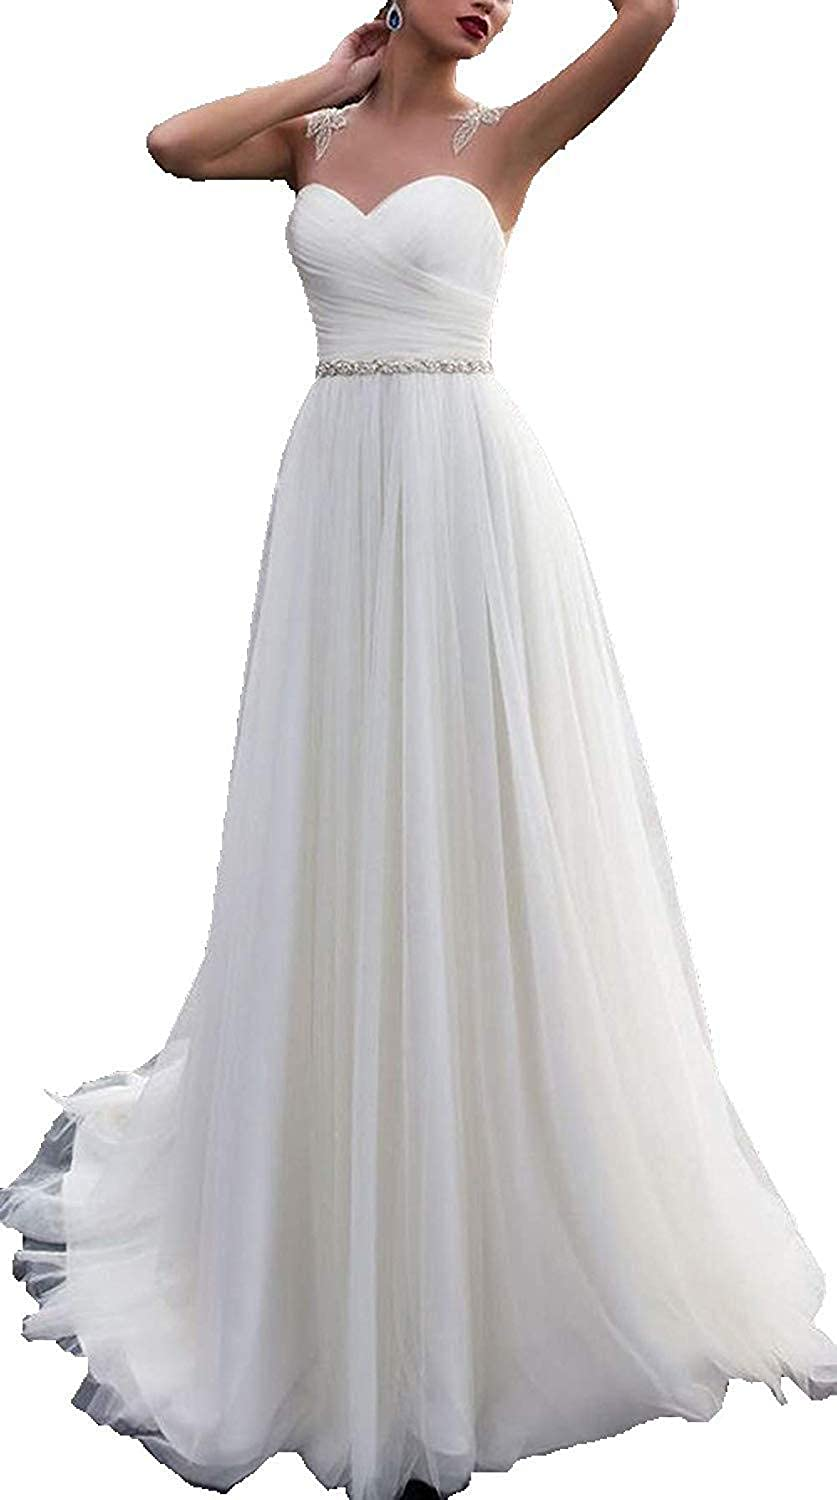 Women s Unique Sweetheart Lace Appliques Back Beach Wedding Dresses for  Bride at Amazon Women s Clothing store  bfd4f12d4c